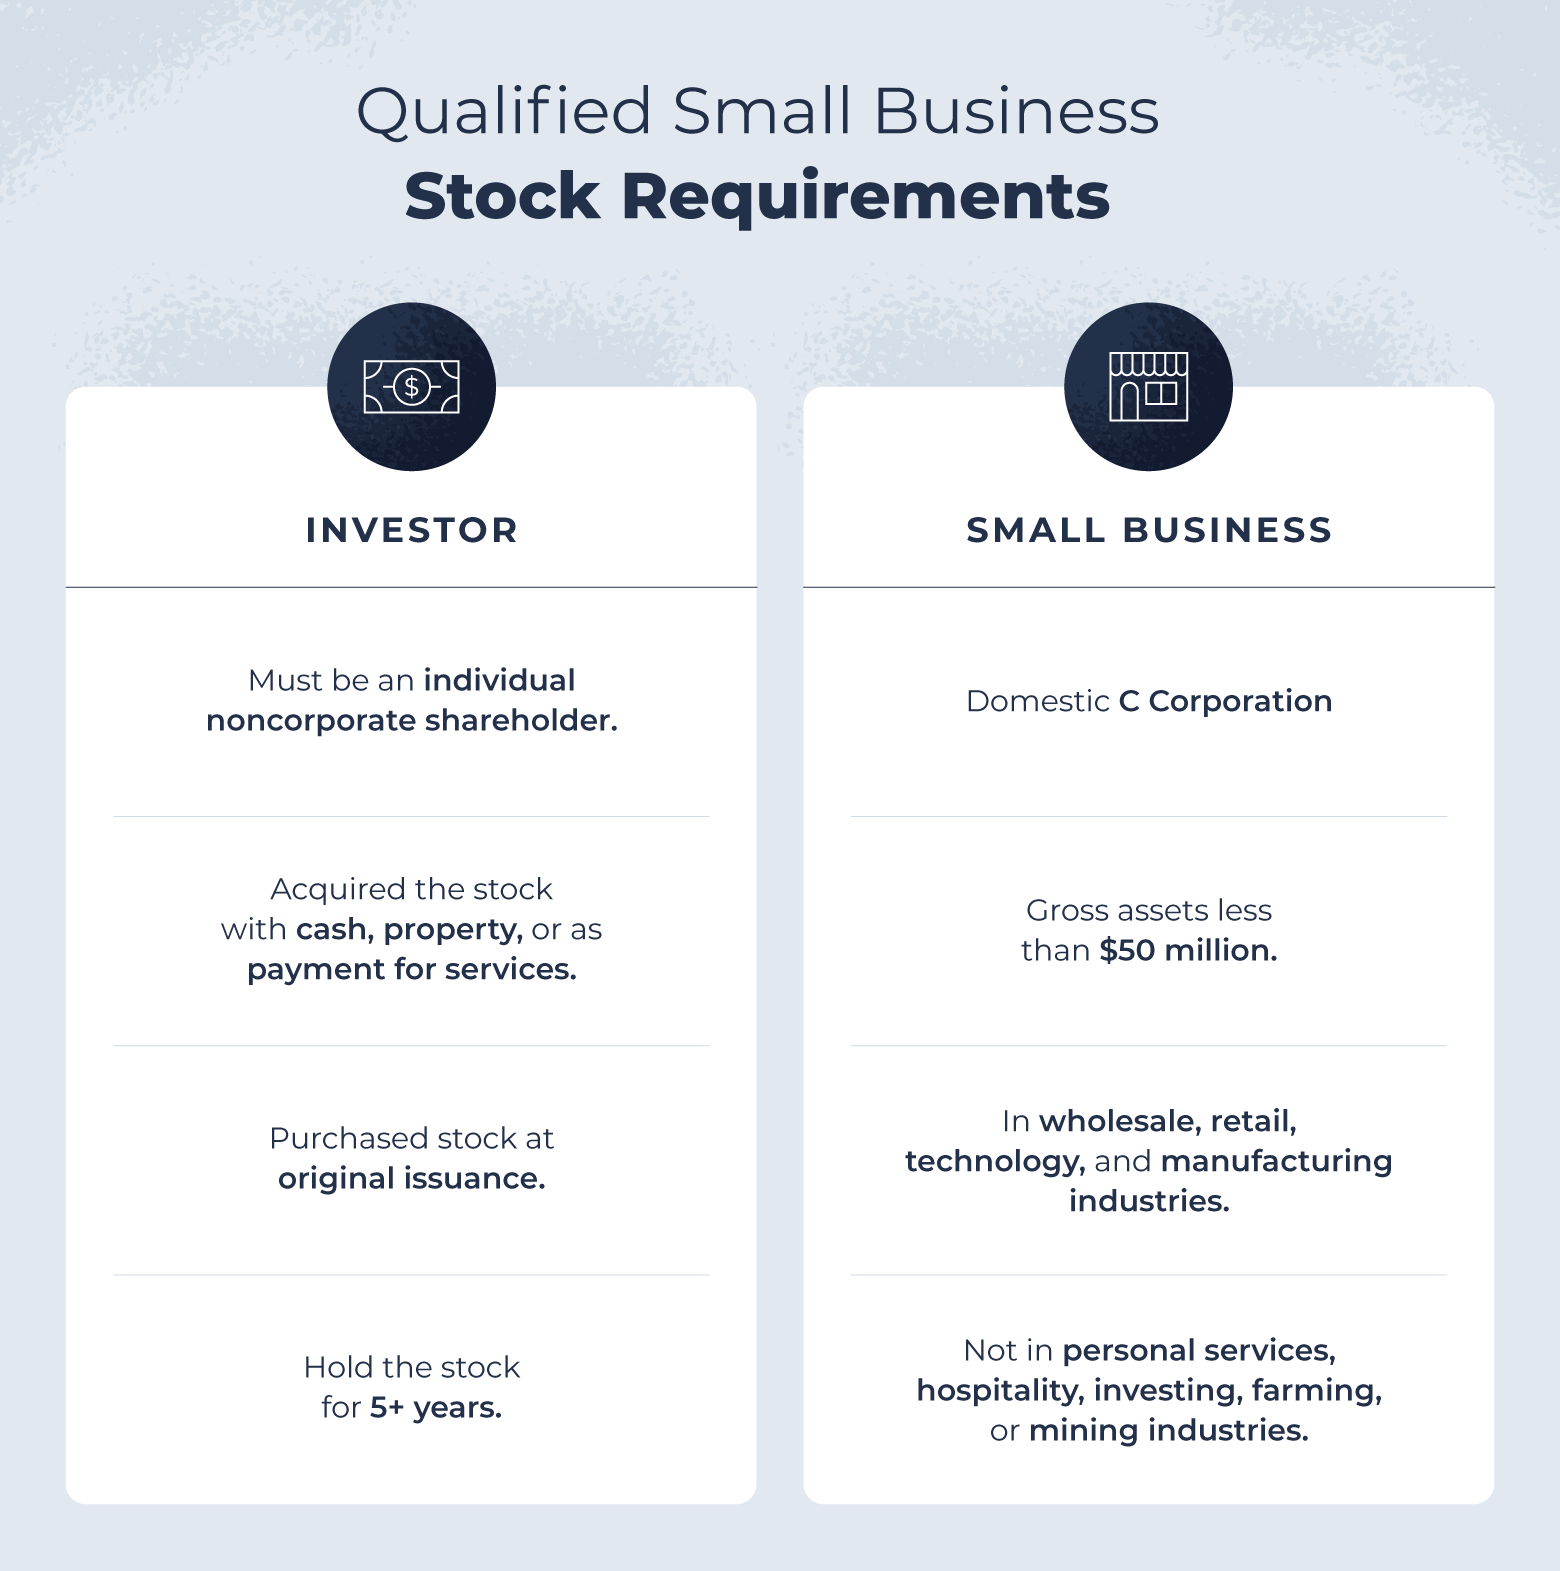 Qualified small business stock requirements for investors and small businesses